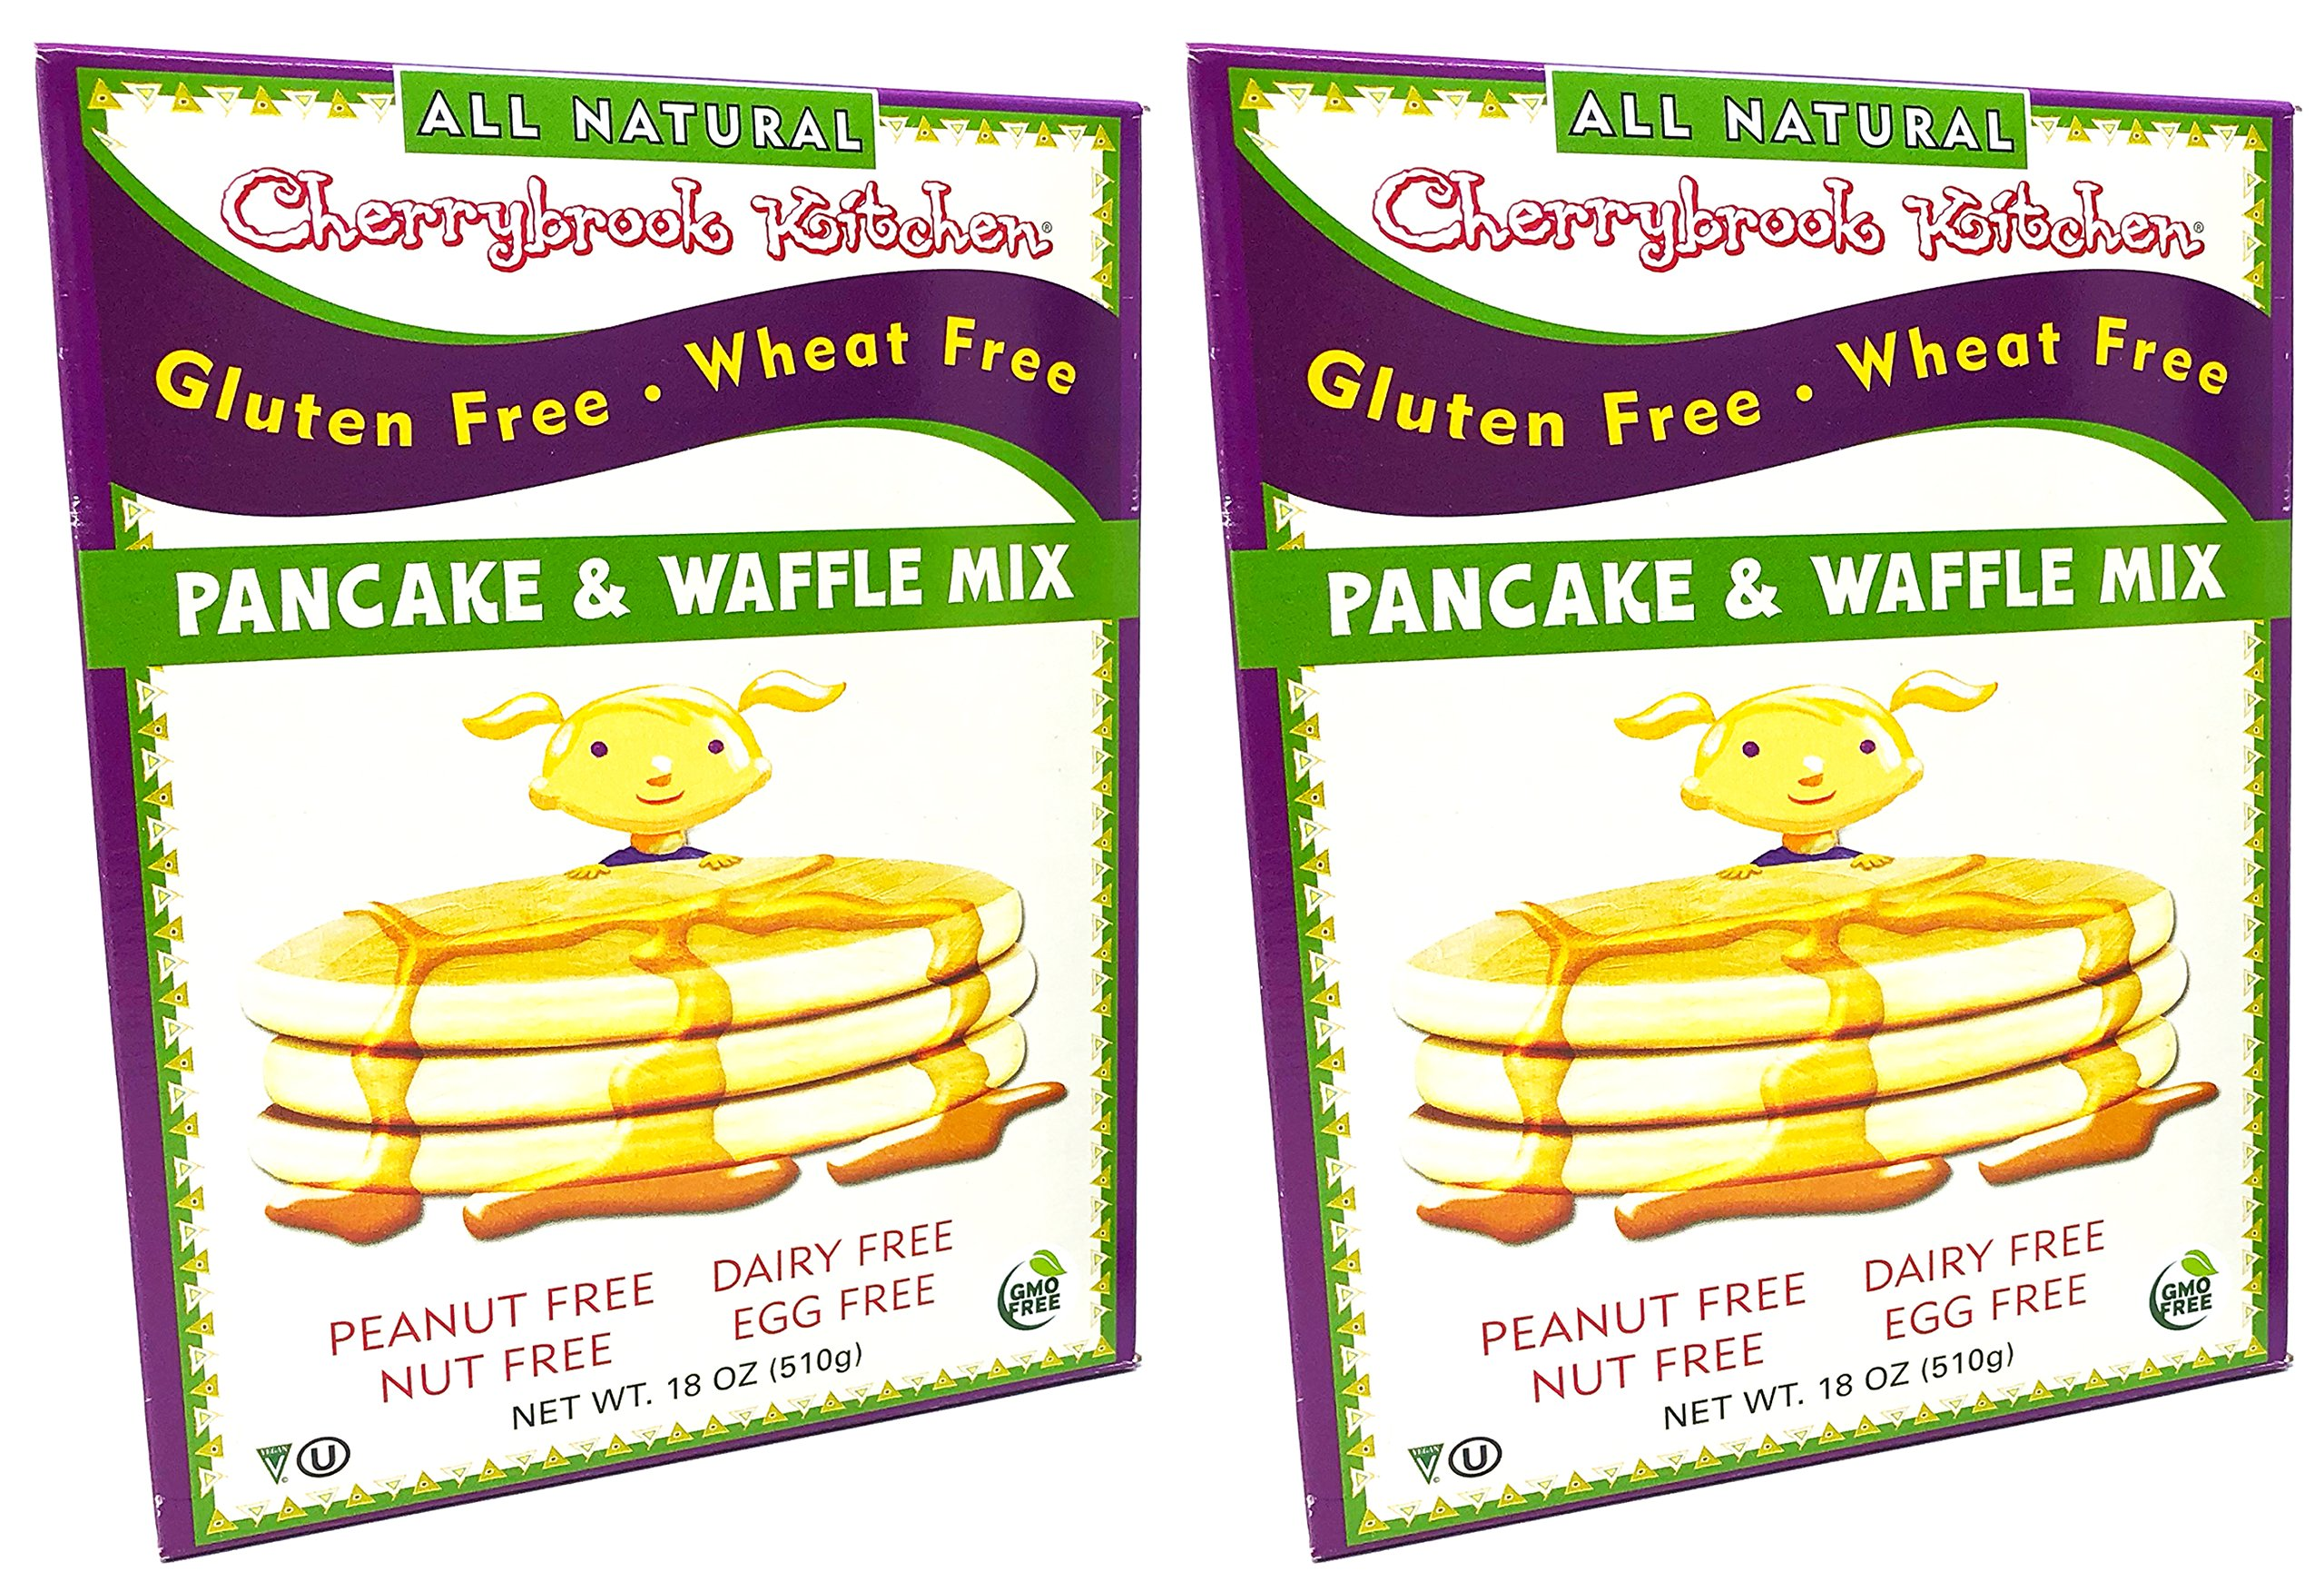 Cherrybrook Kitchen All Natural Gluten Free Wheat Free Pancake and Waffle Mix 18 Ounce (Pack of 2)